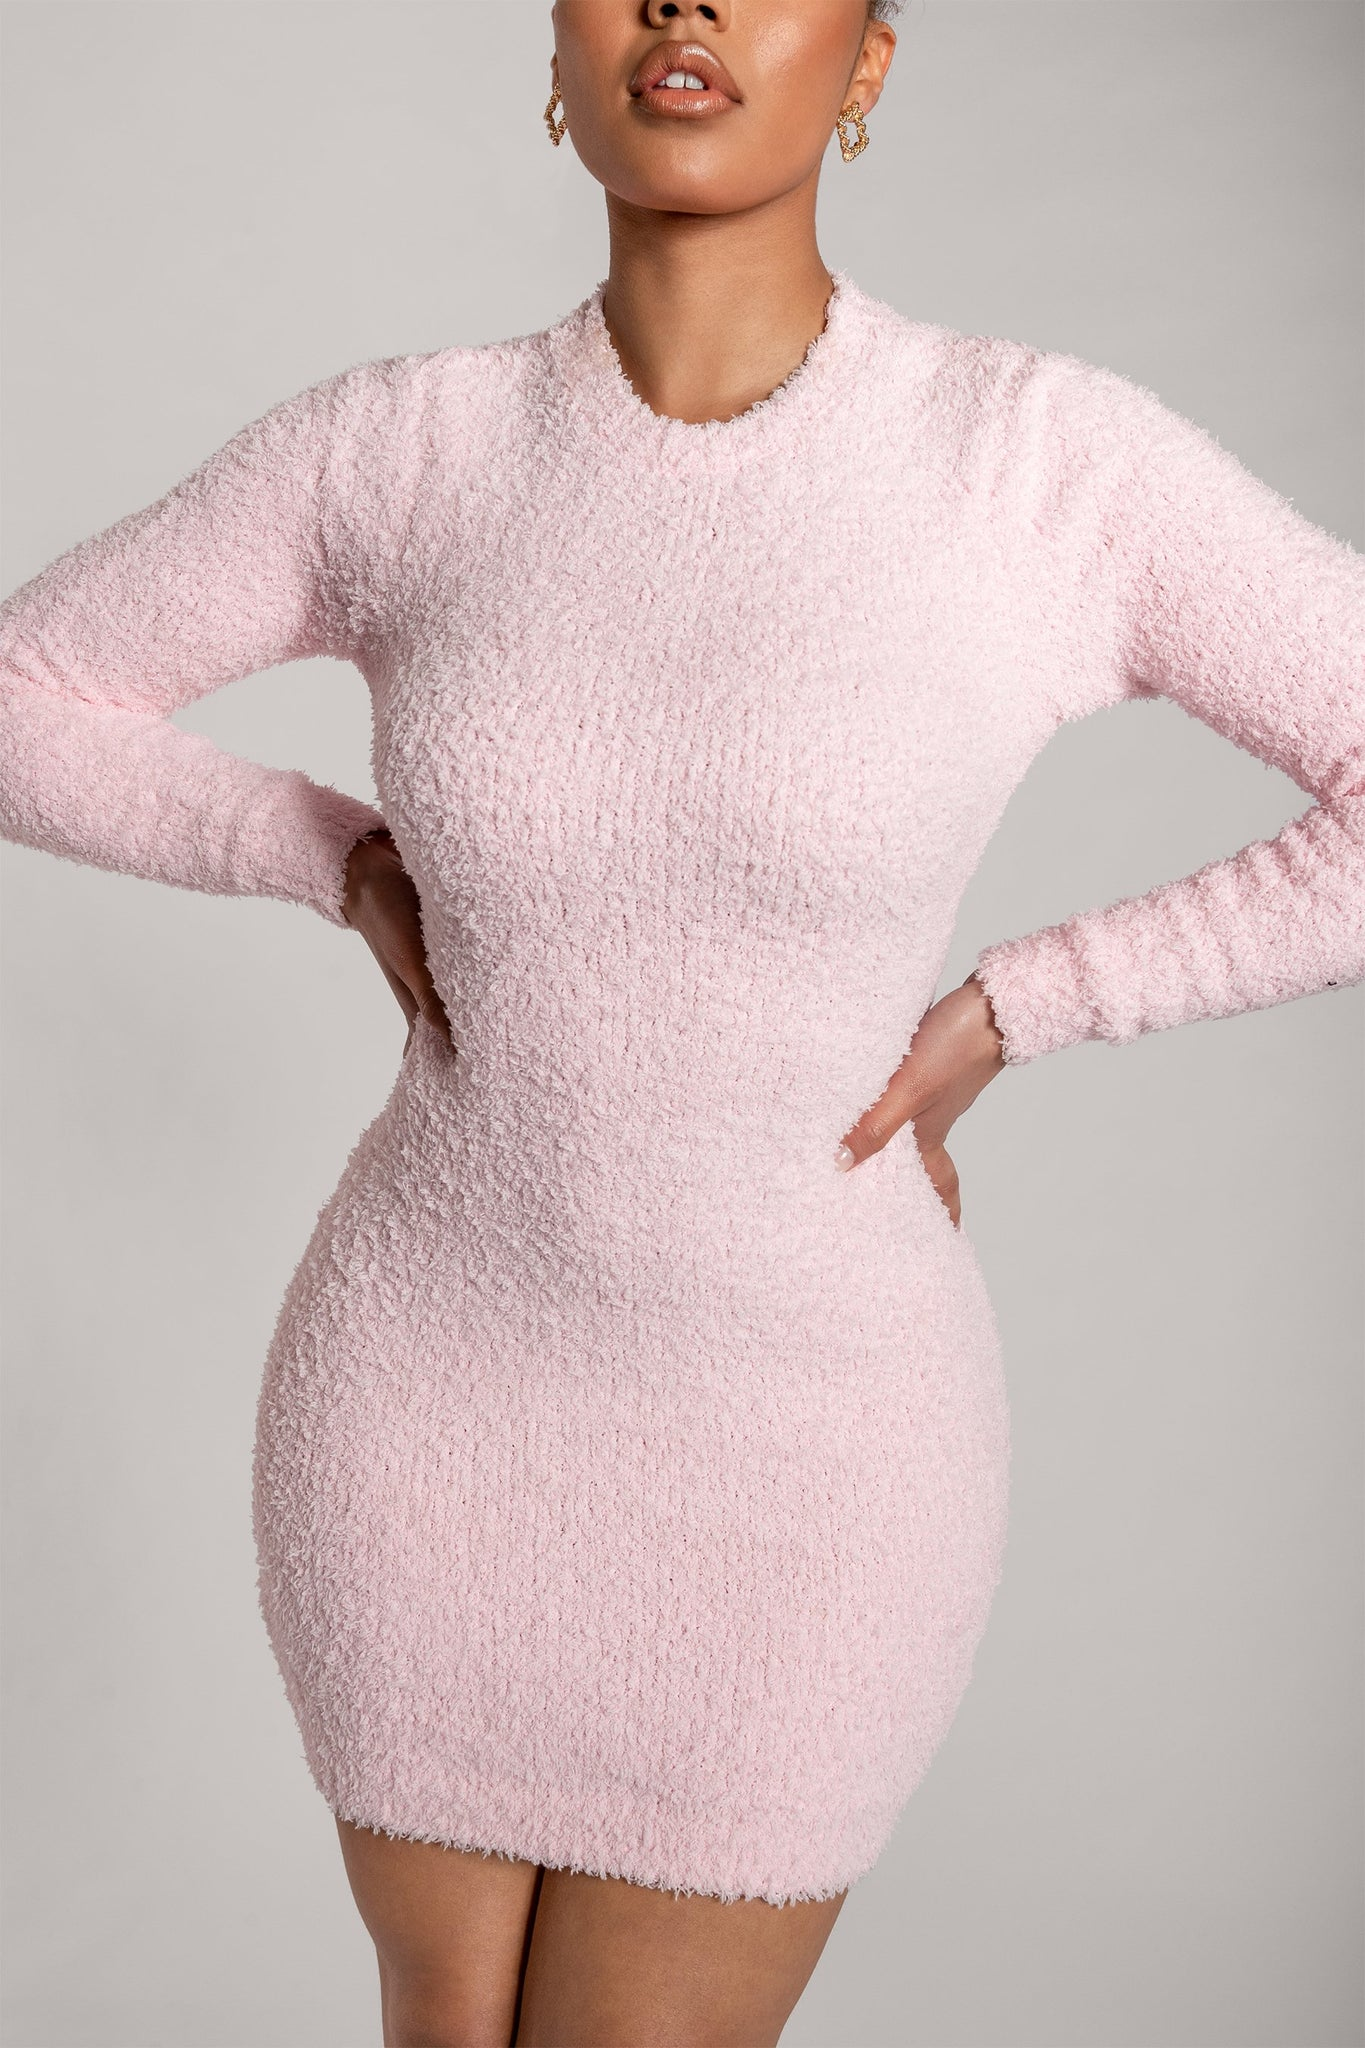 Lorin Popcorn Cut Out Back Long Sleeve Mini Dress - Baby Pink - MESHKI